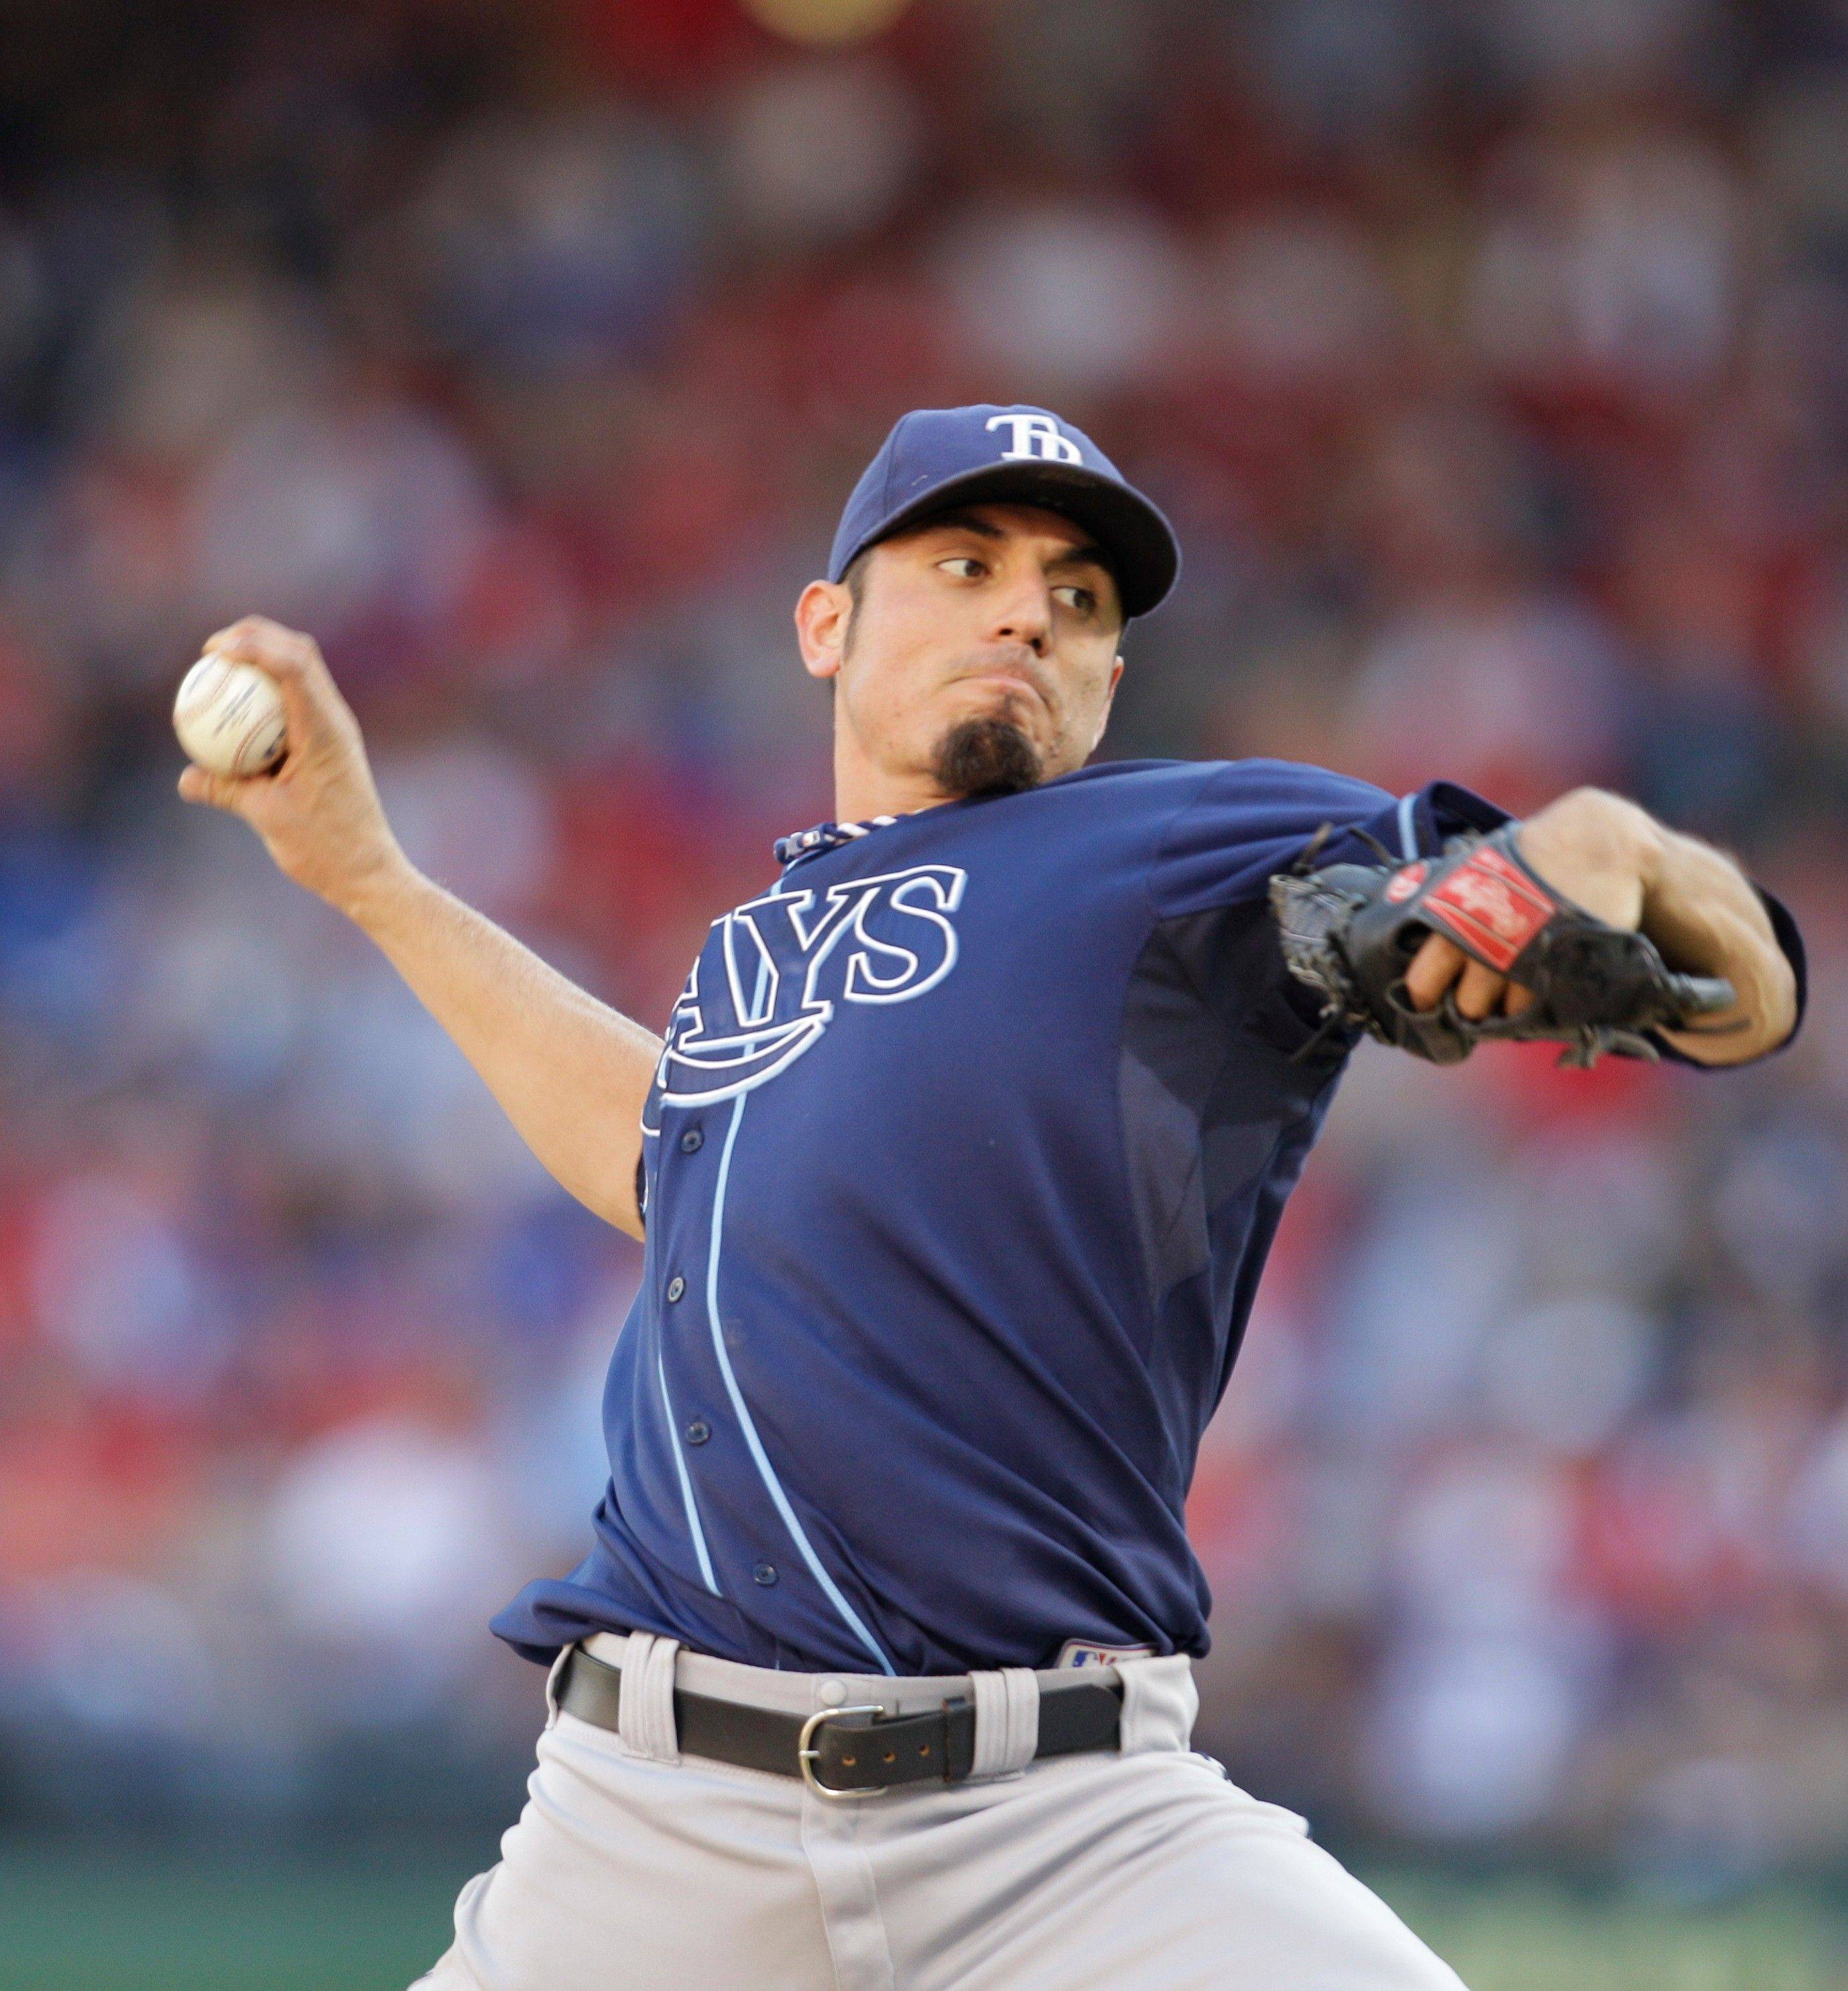 The Cubs gave up several prospects for Tampa Bay Rays starting pitcher Matt Garza, who won 15 games last season.